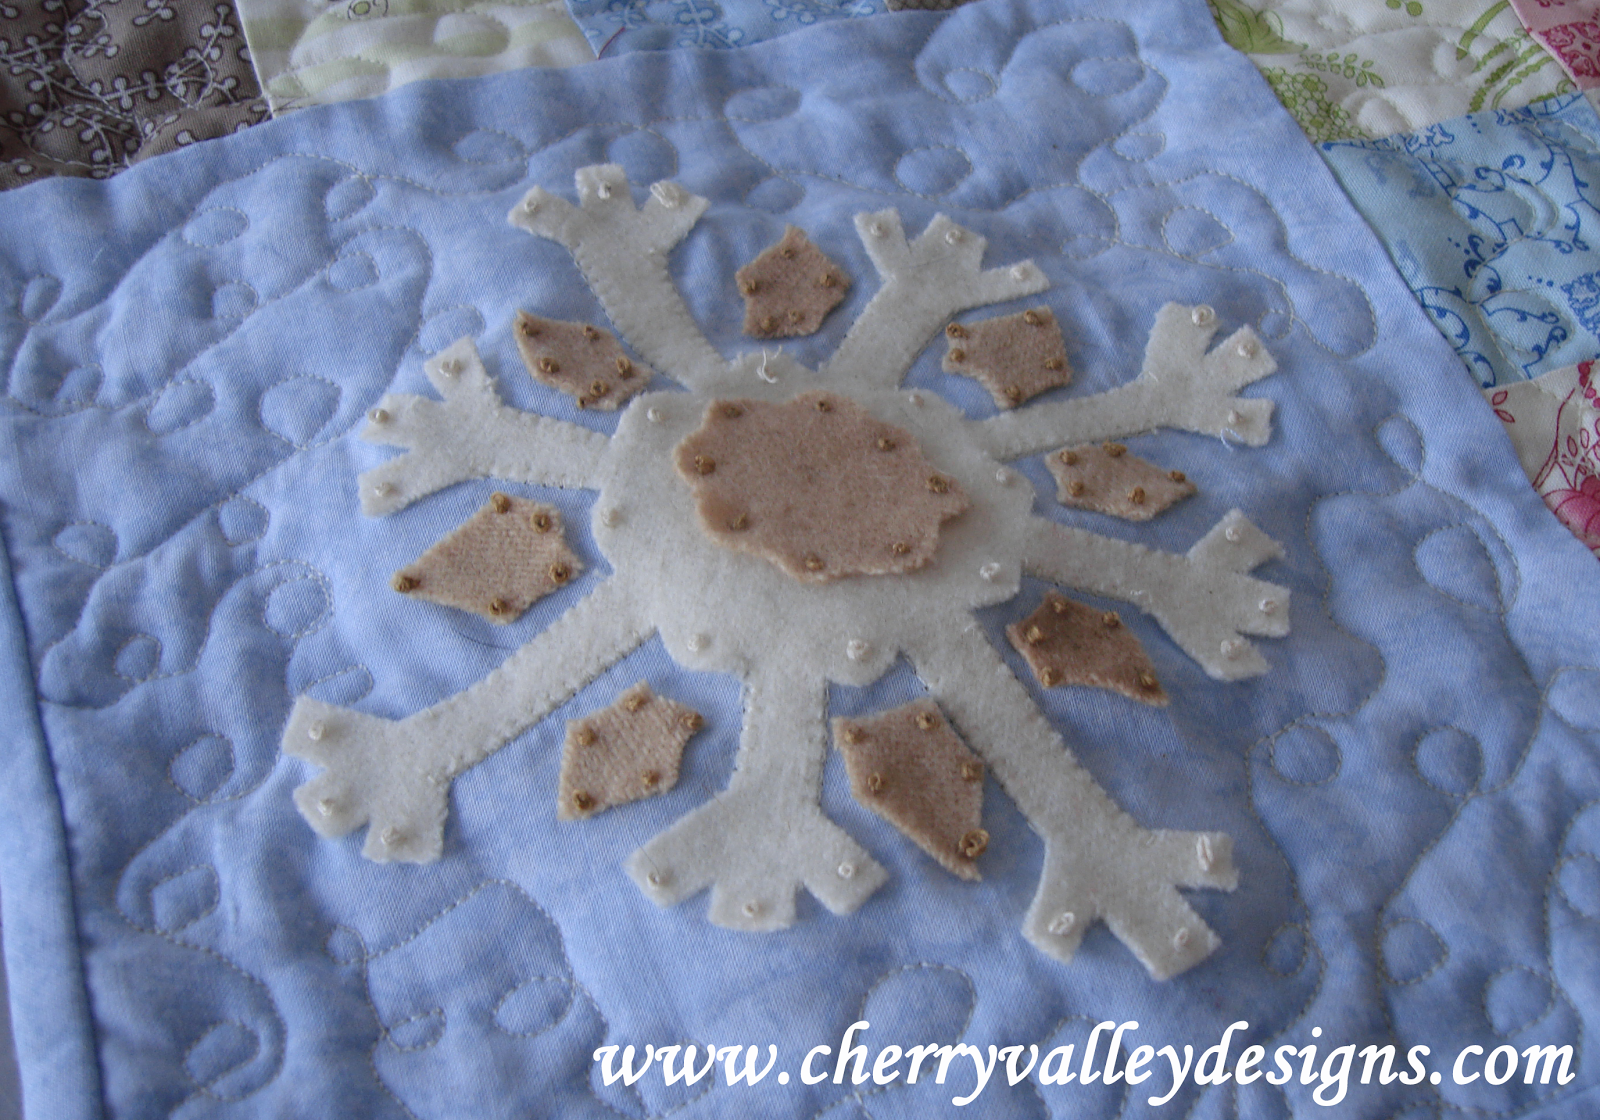 Cherry+Valley+Designs+Snowflake+Applique